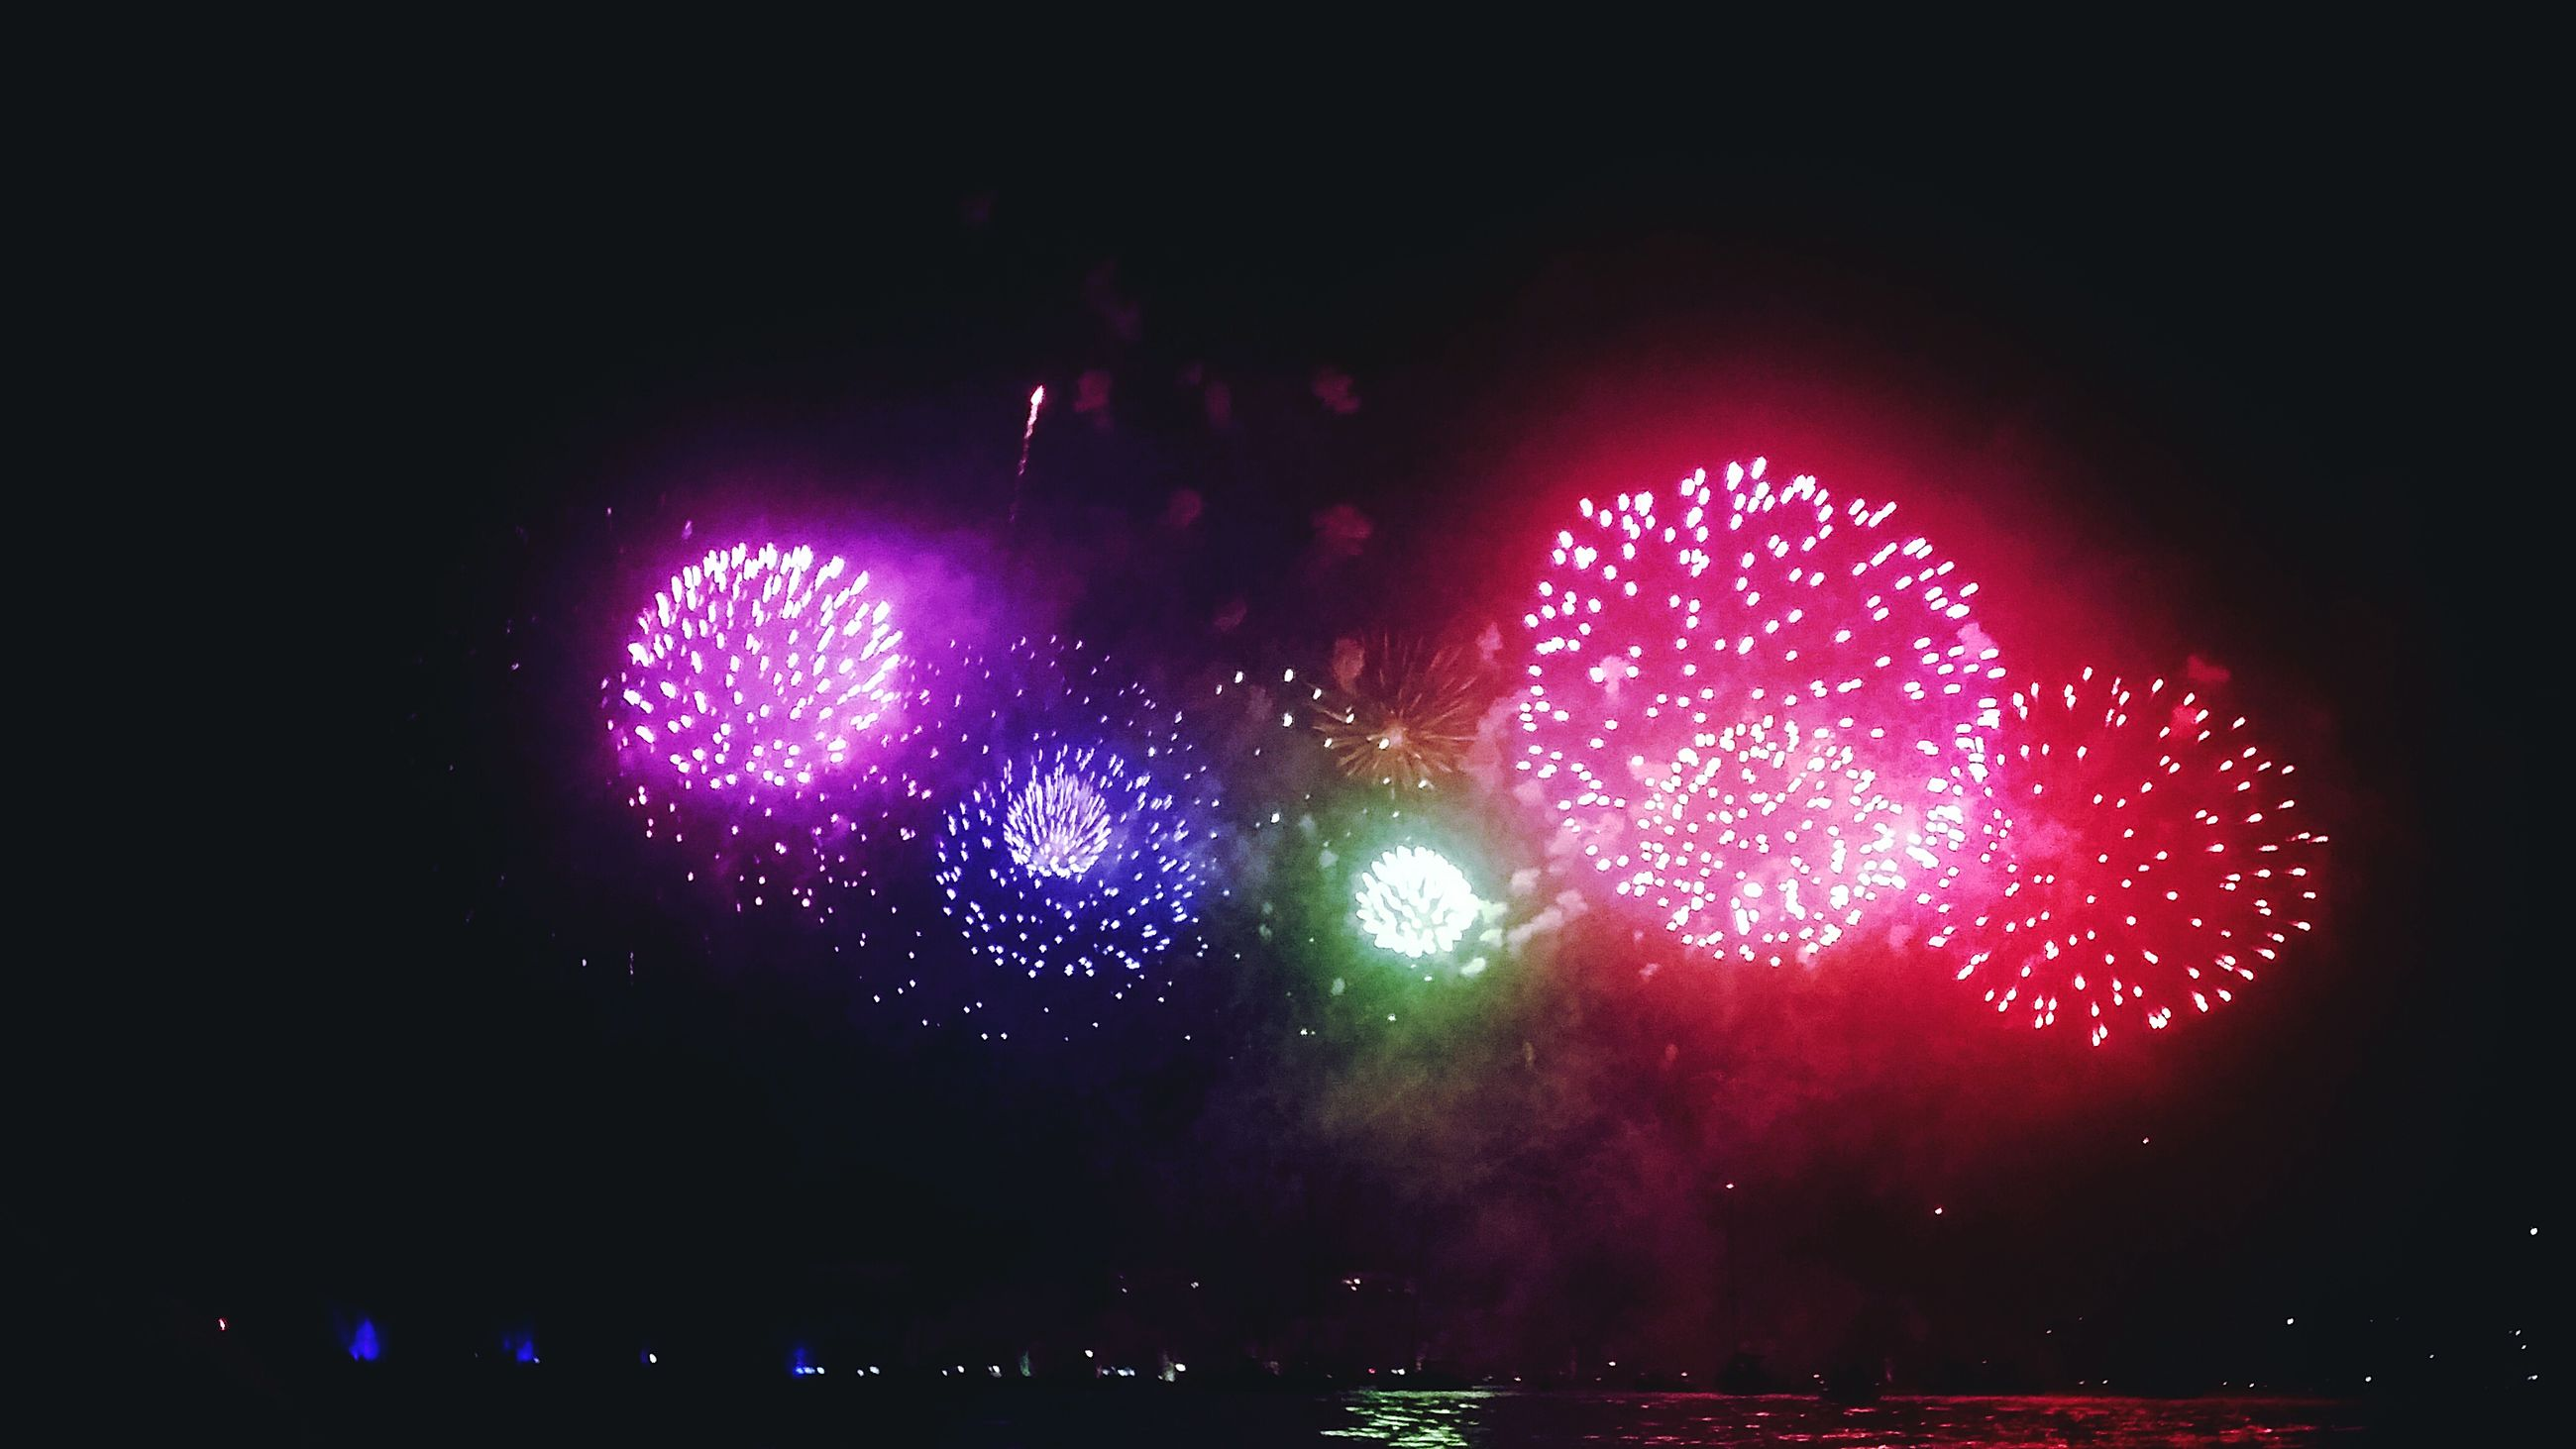 night, celebration, illuminated, arts culture and entertainment, glowing, firework display, no people, firework - man made object, event, outdoors, low angle view, multi colored, firework, sky, close-up